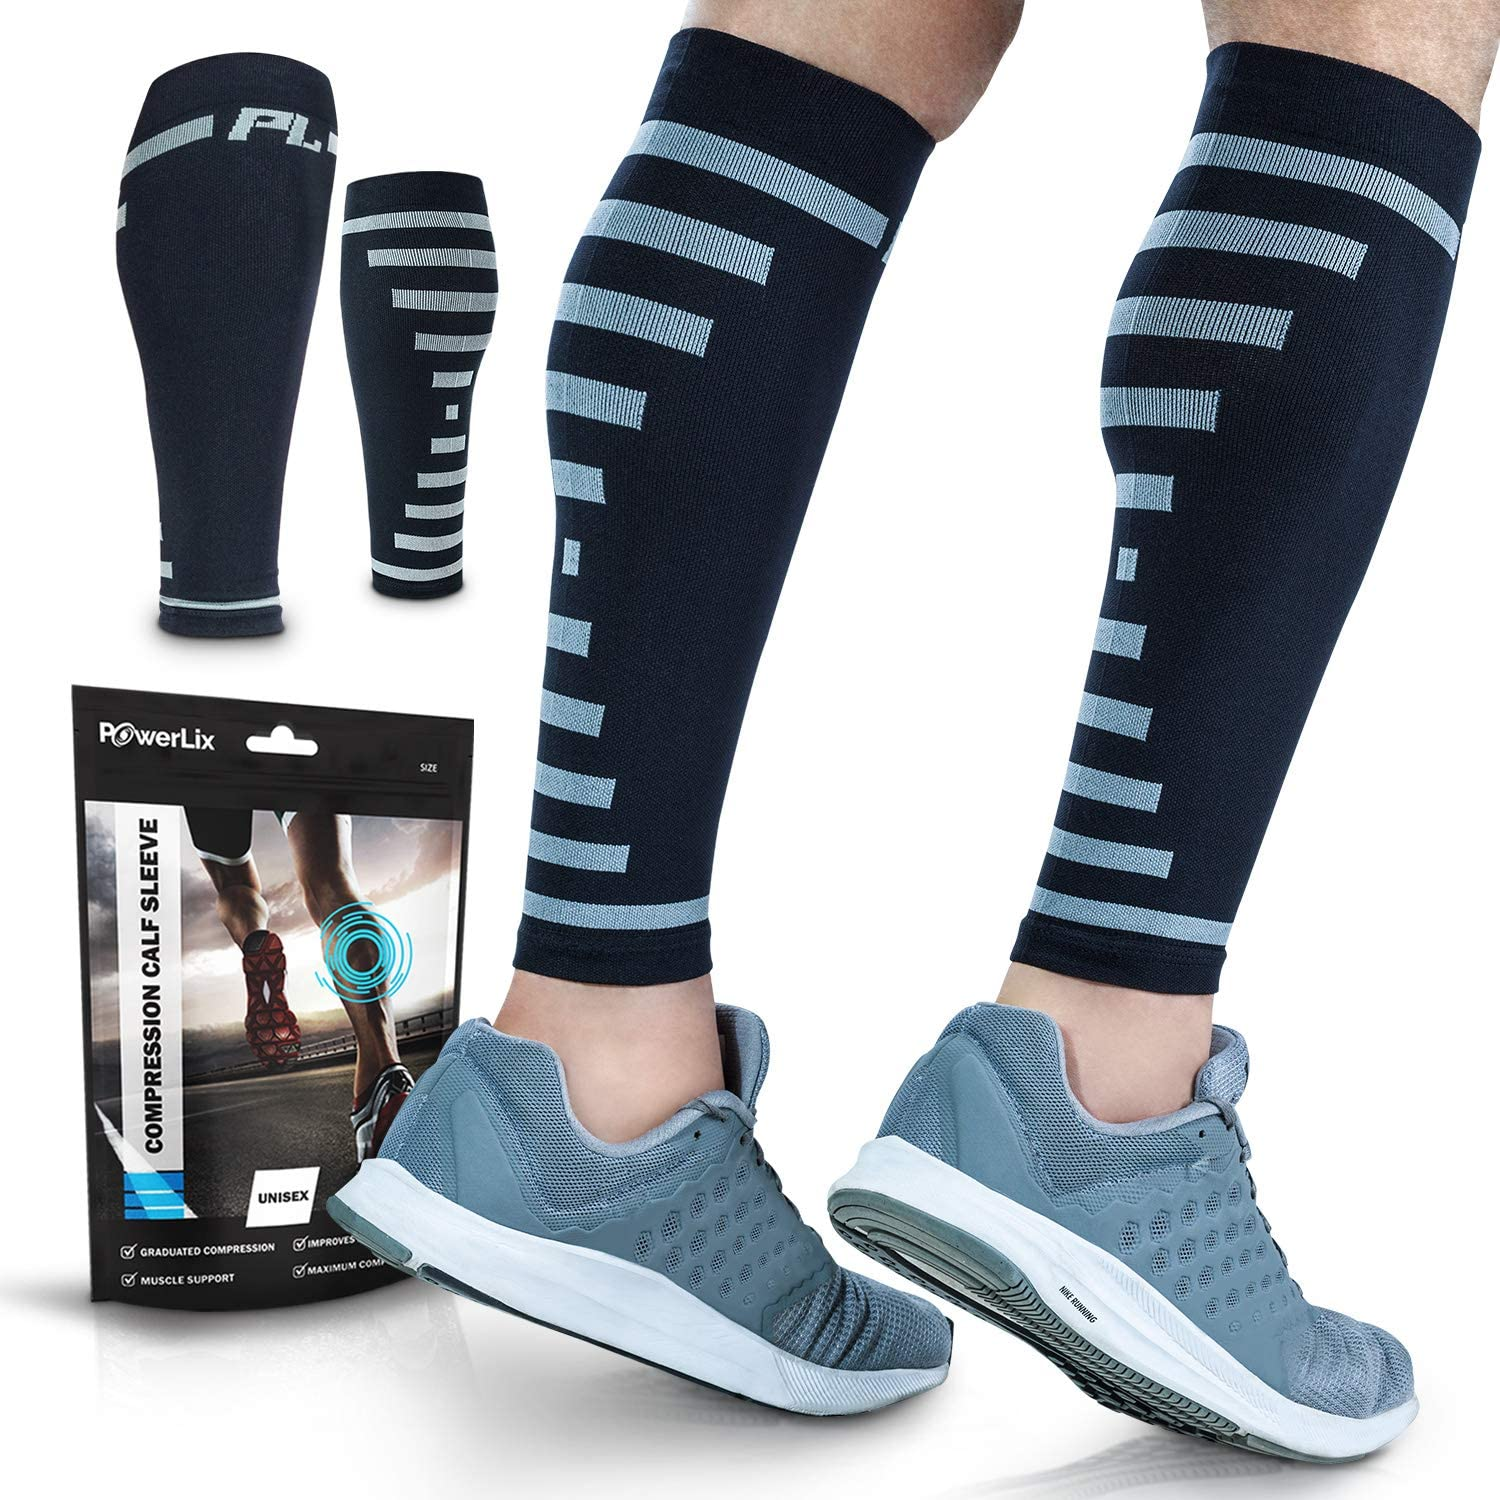 PowerLix Calf Compression Sleeve (Pair) – Supreme Shin Splint Sleeves for Men & Women – 20-30 mmHg